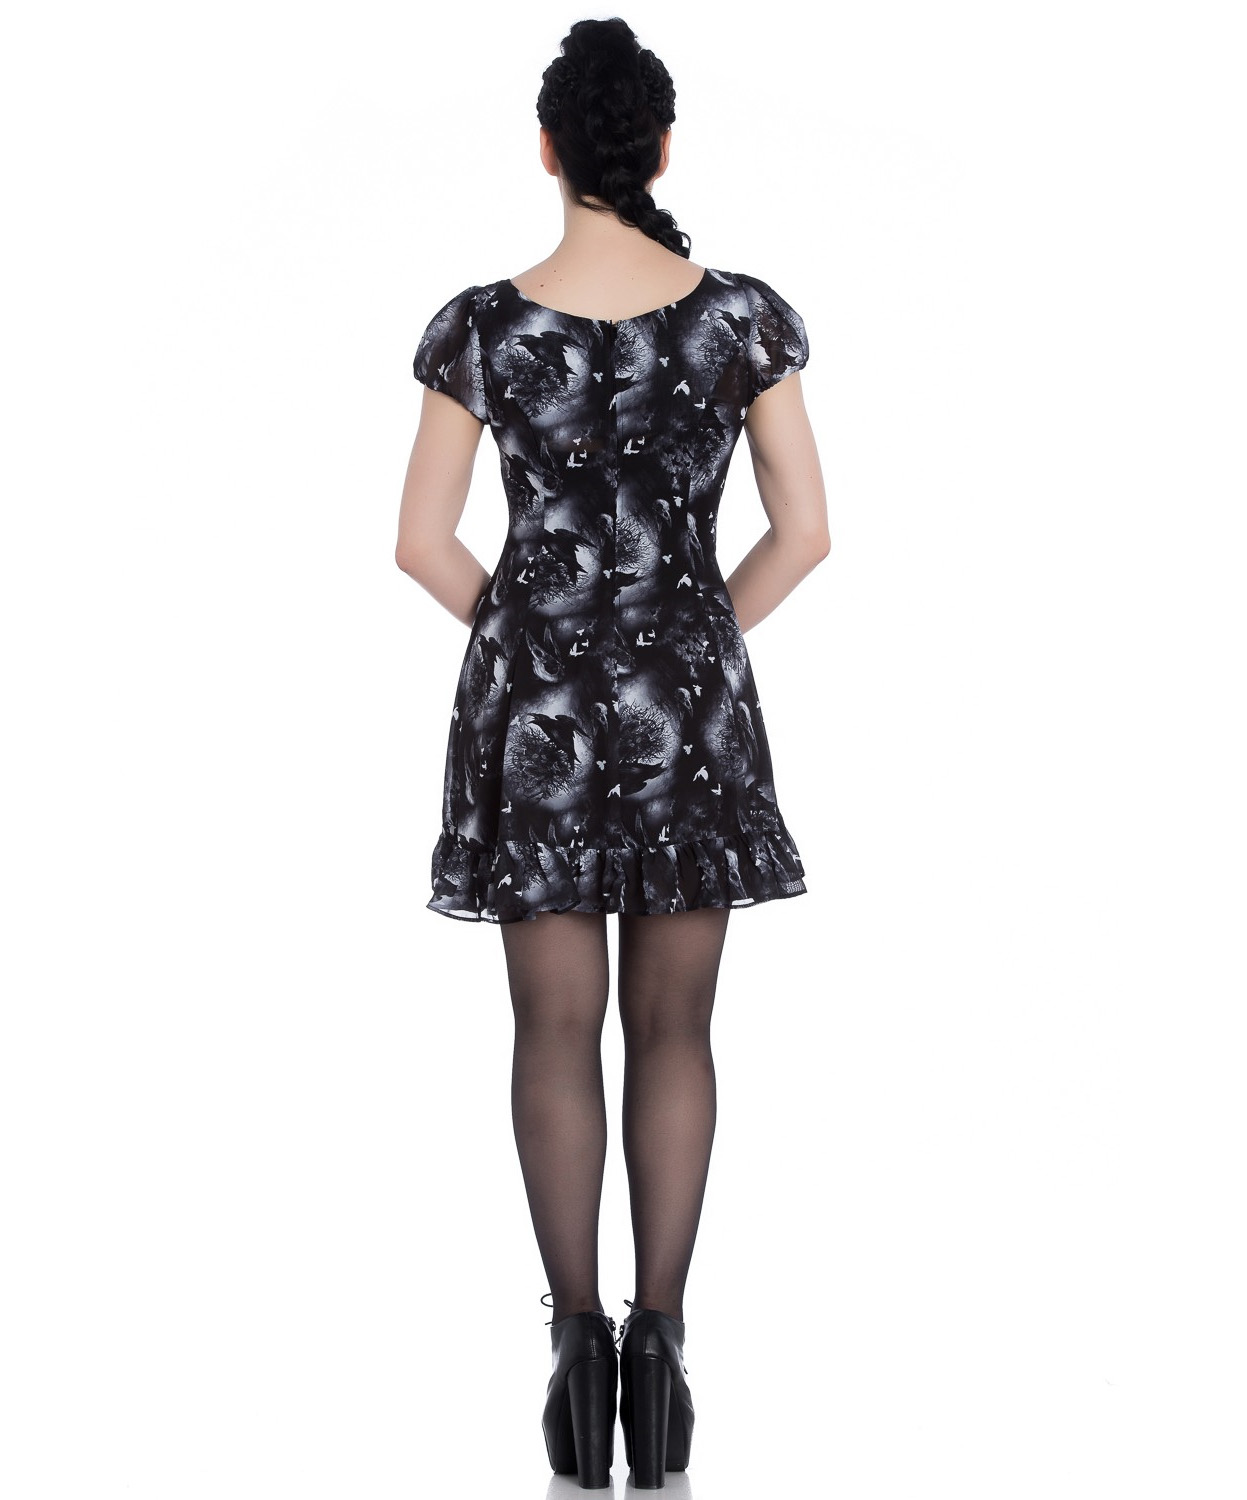 Hell-Bunny-Alchemy-Gothic-Black-Skater-Mini-Dress-ASH-Crows-Skulls-All-Sizes thumbnail 25